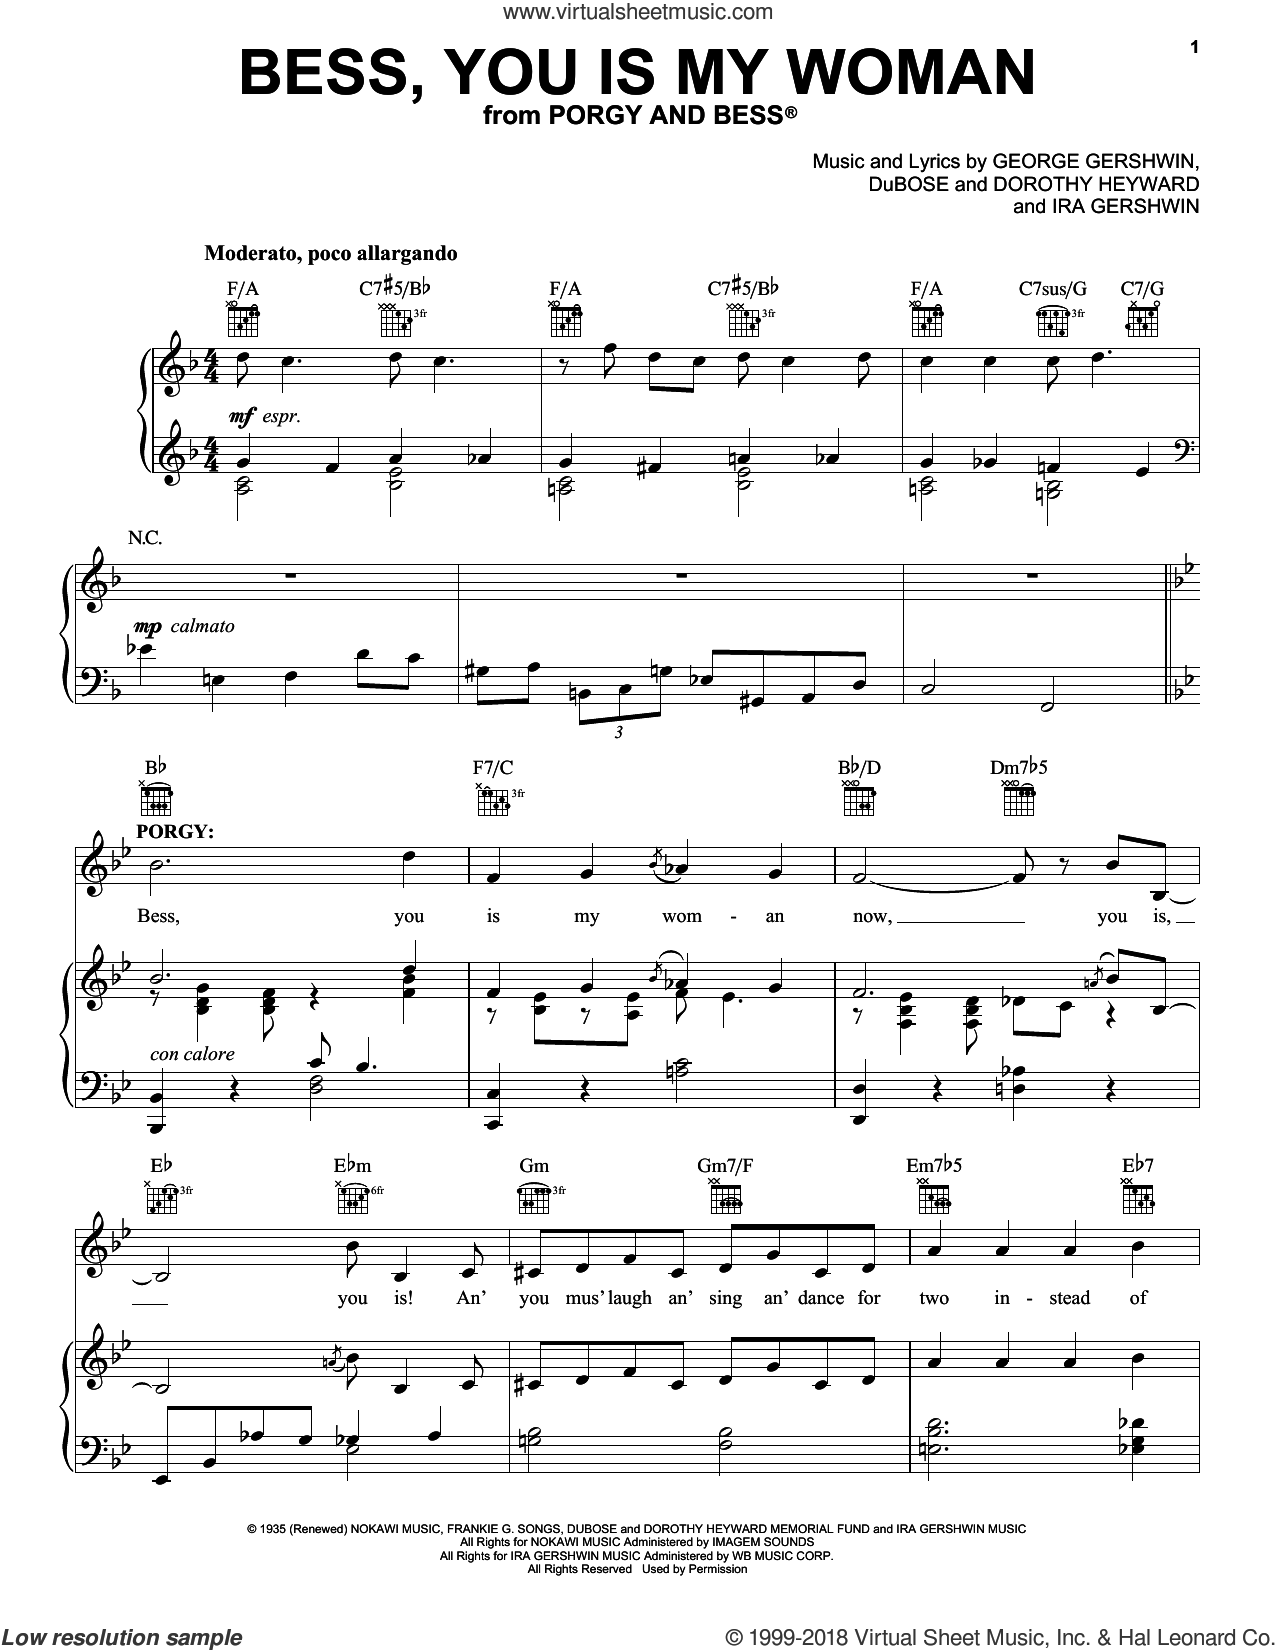 Bess, You Is My Woman sheet music for voice, piano or guitar by George and Ira Gershwin, Dorothy Heyward, DuBose Heyward, George Gershwin and Ira Gershwin, intermediate